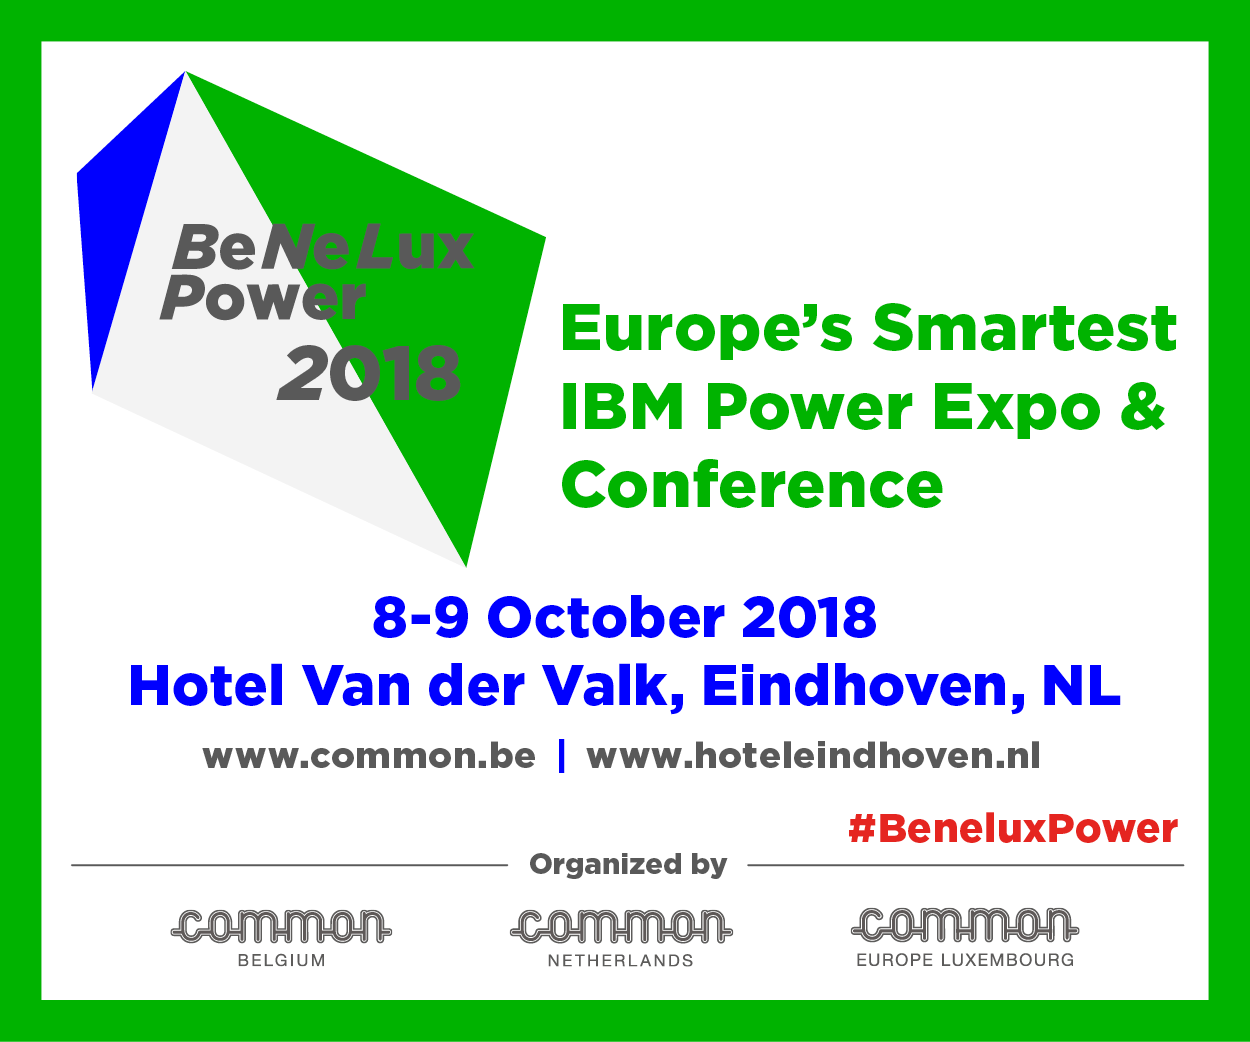 COMMON BeNeLux Power 2018 mail banner 300x250 300ppi